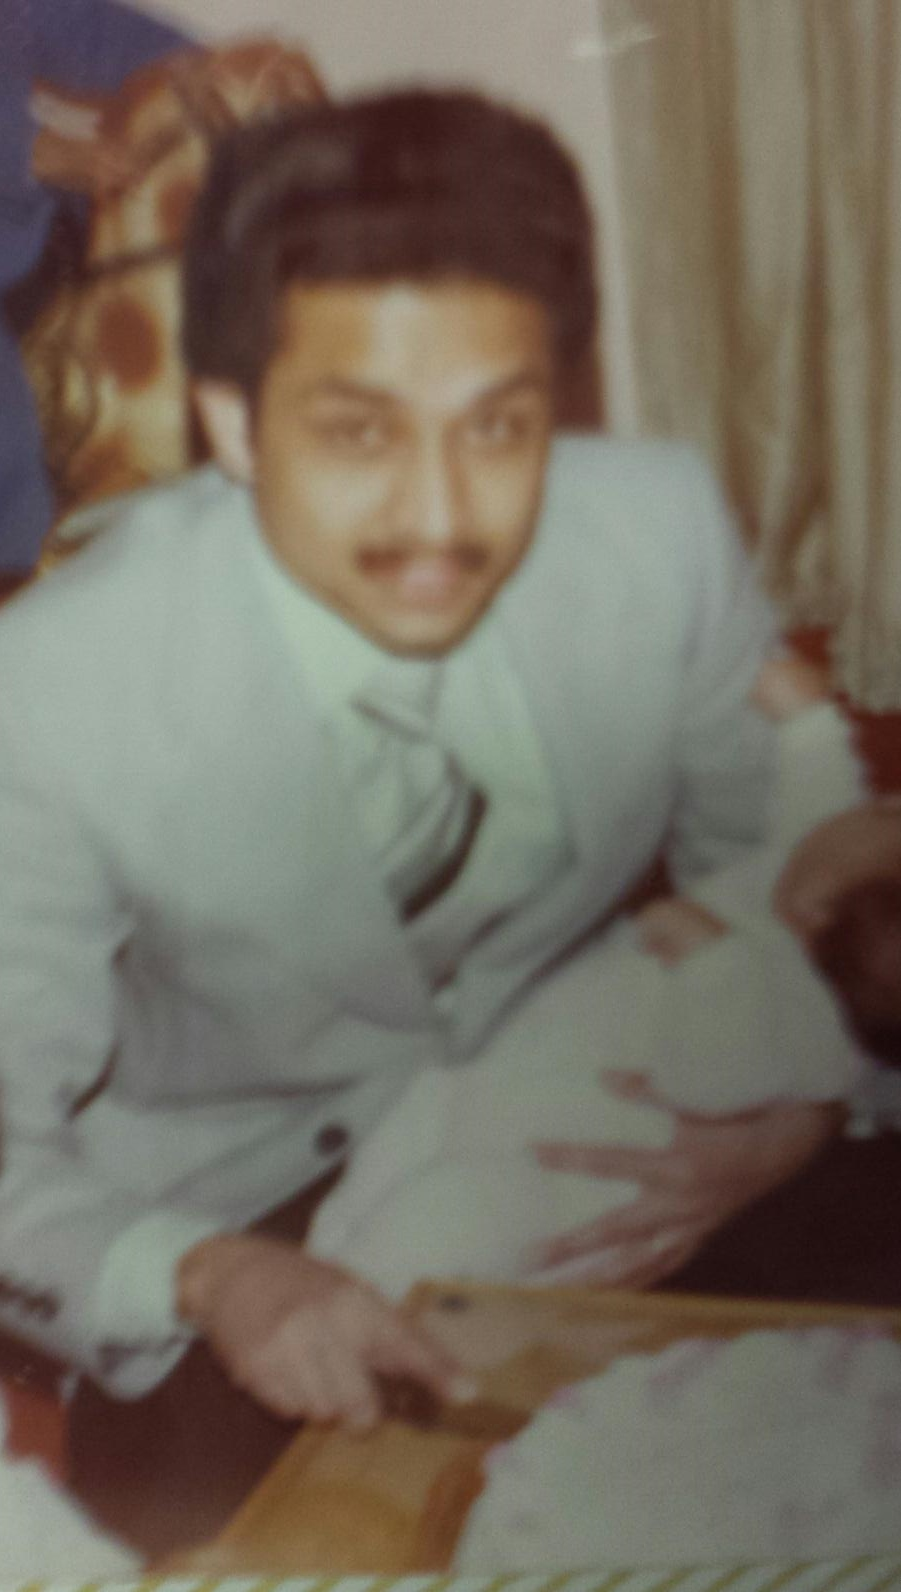 He will very likely end me if he finds out this picture is on the internet, but seriously people: check out that swagger. Dude is holding an infant and cutting a cake like it's NBD. I'd have trouble doing one of those things with total confidence.